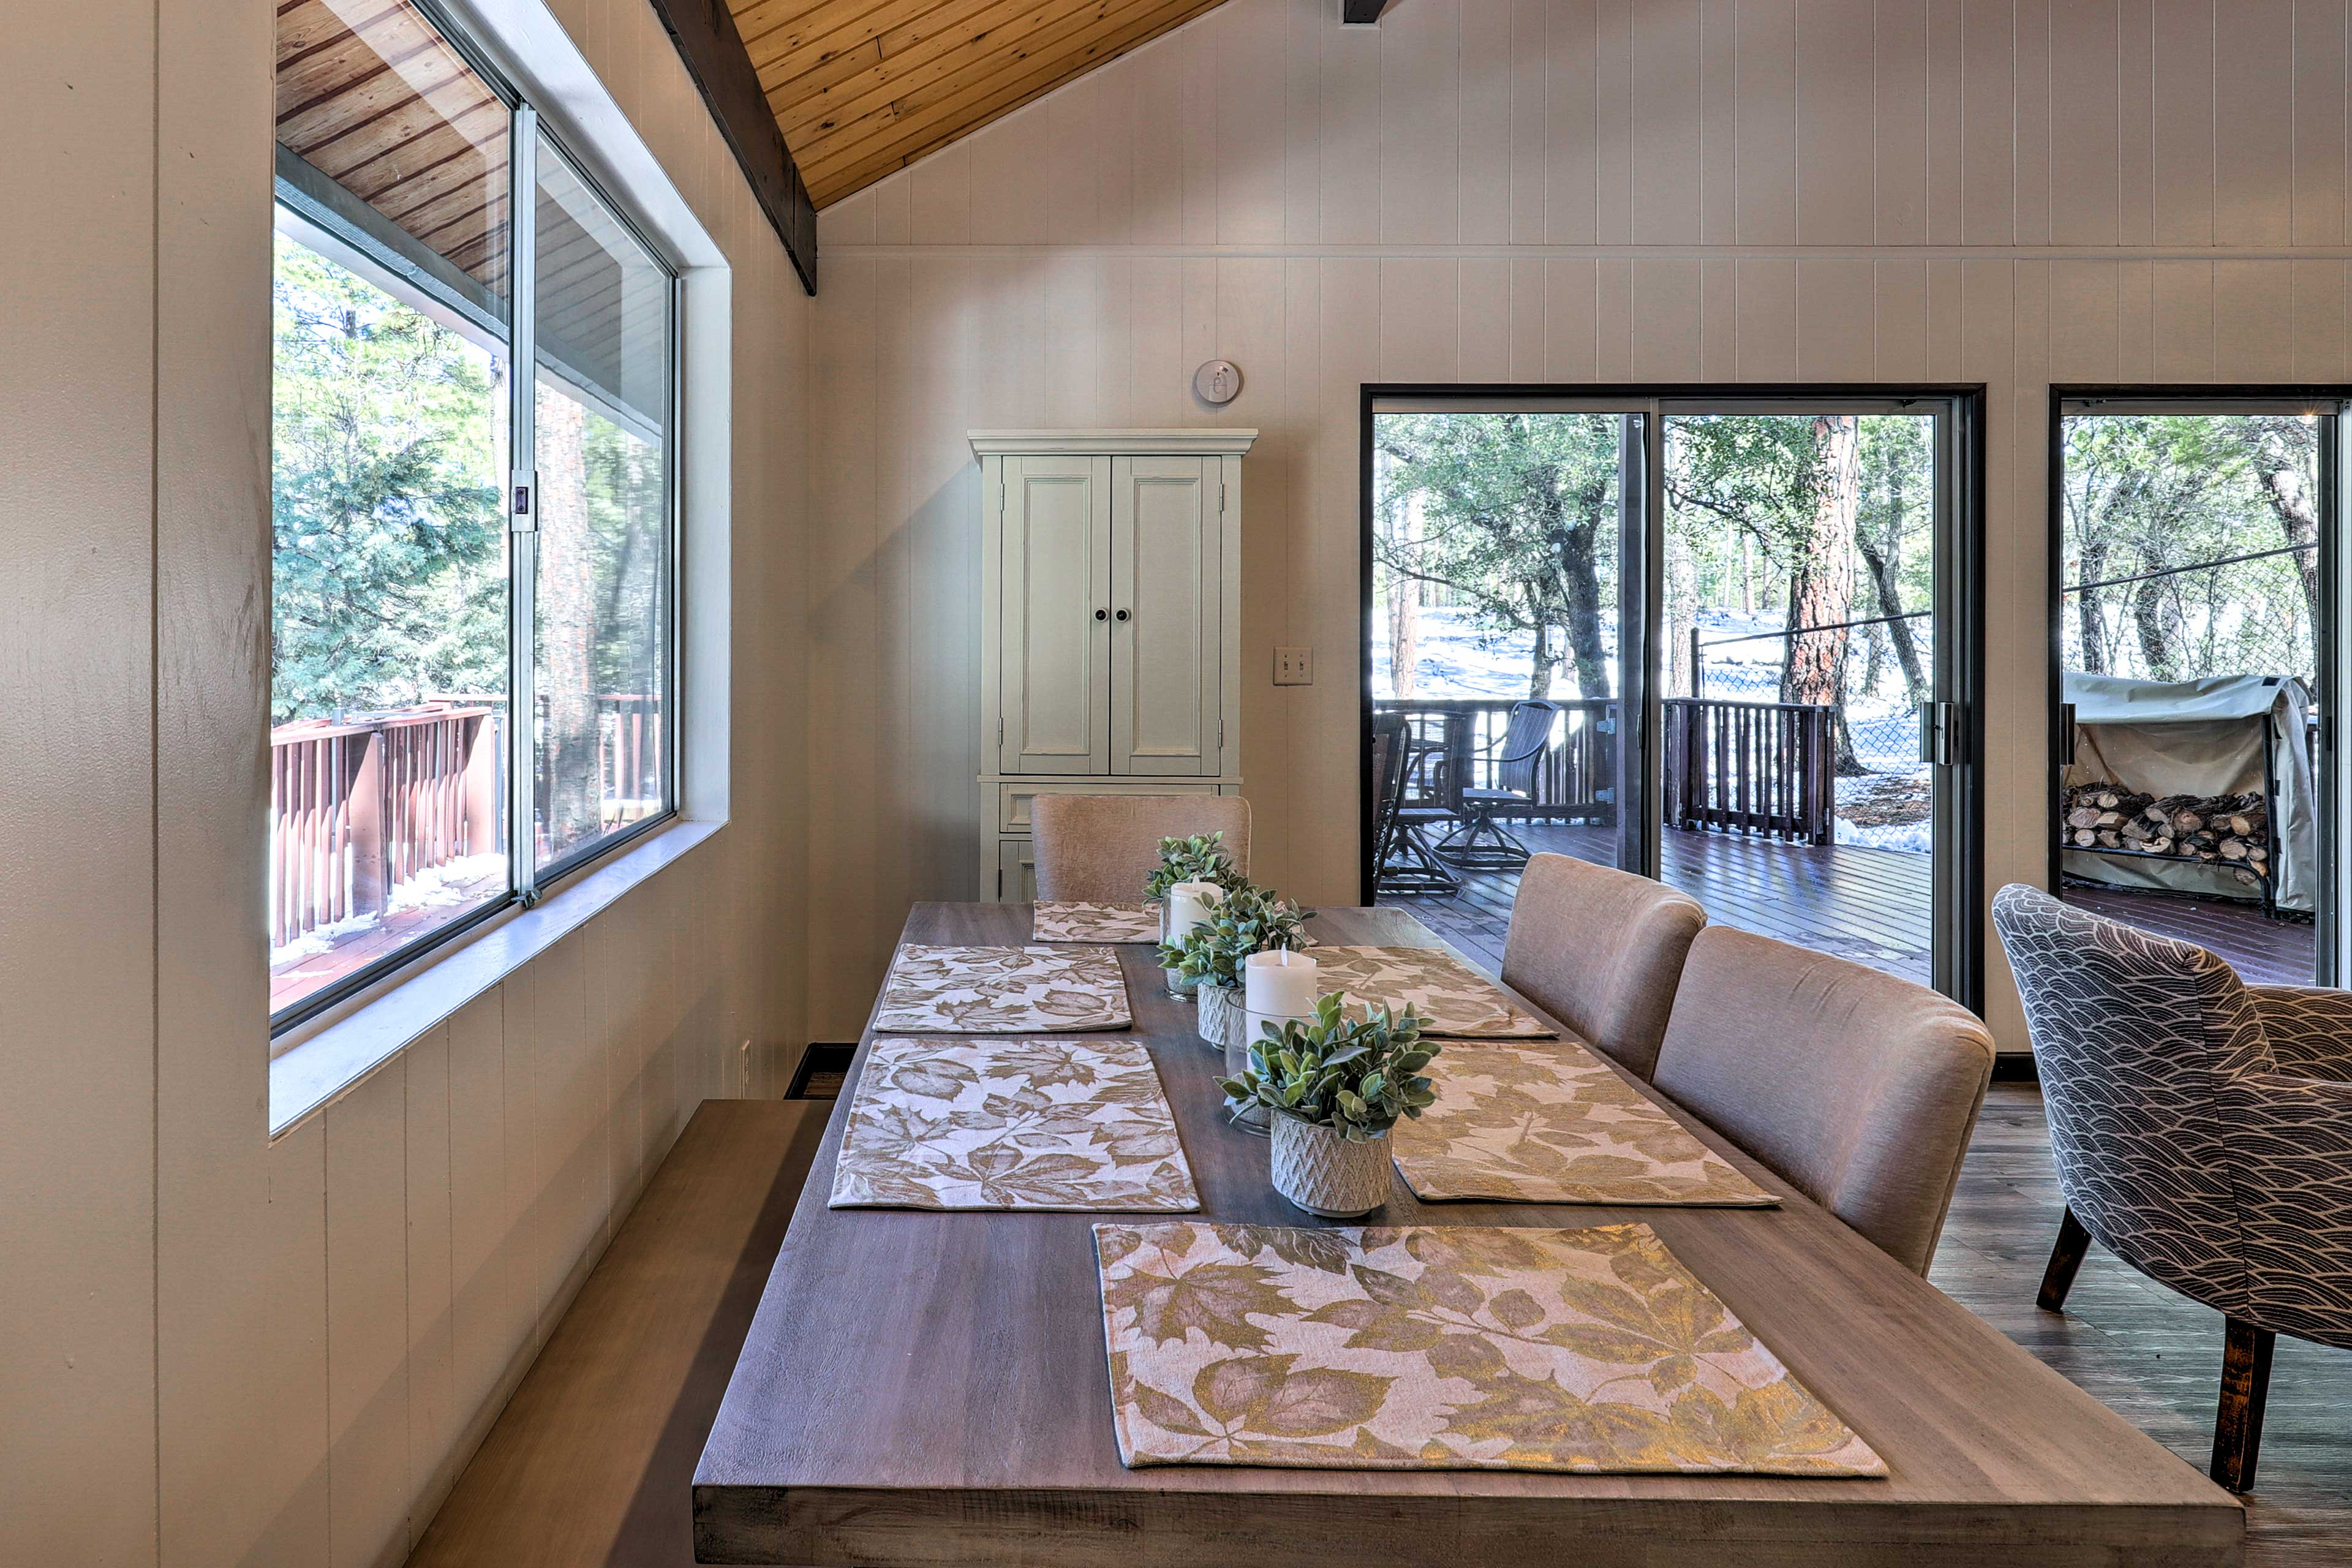 Take in nature views out the large picture windows.